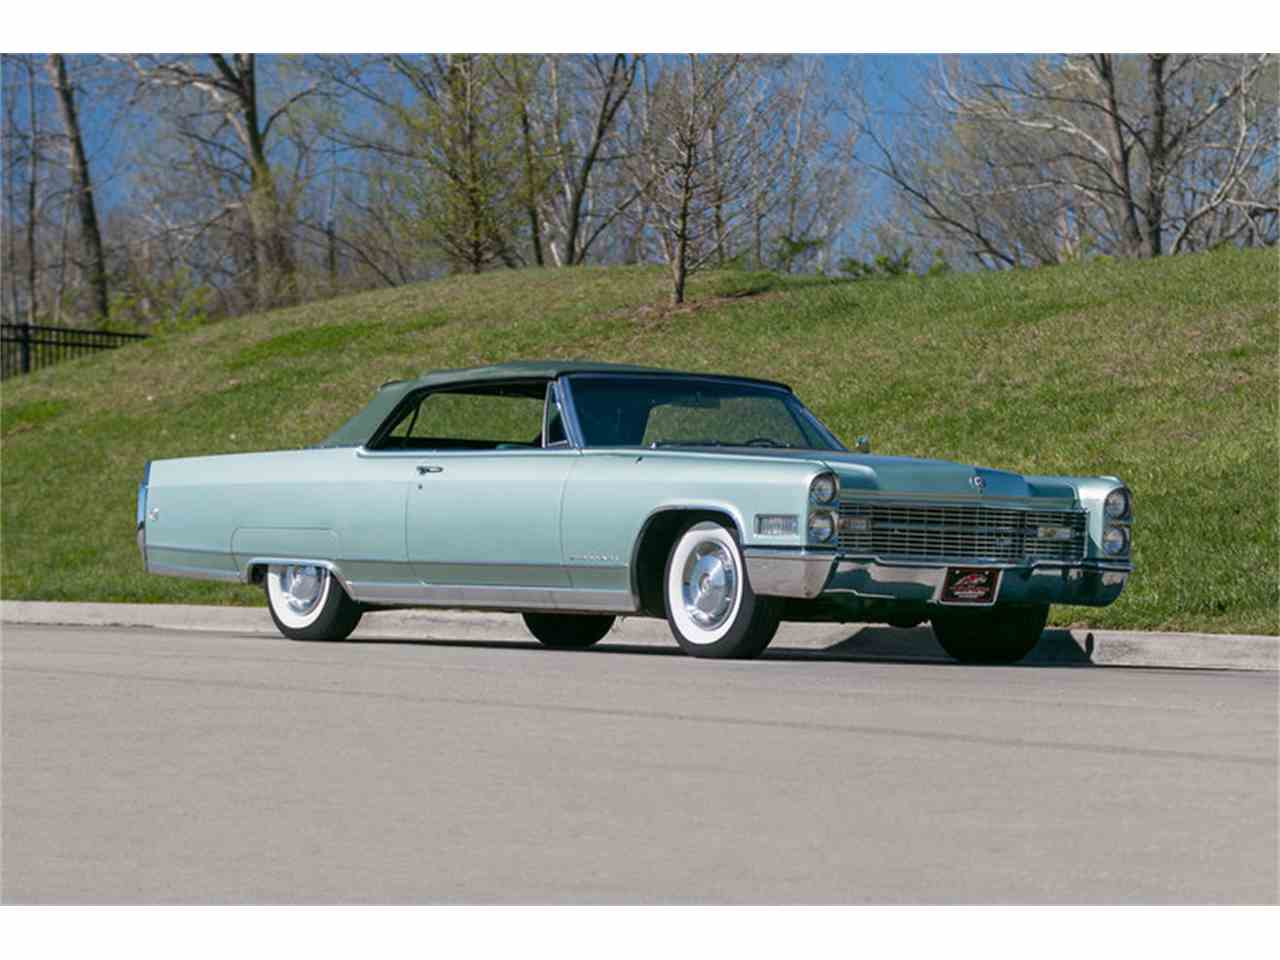 Large Picture of '66 Cadillac Eldorado located in St. Charles Missouri - $49,995.00 - LSH1